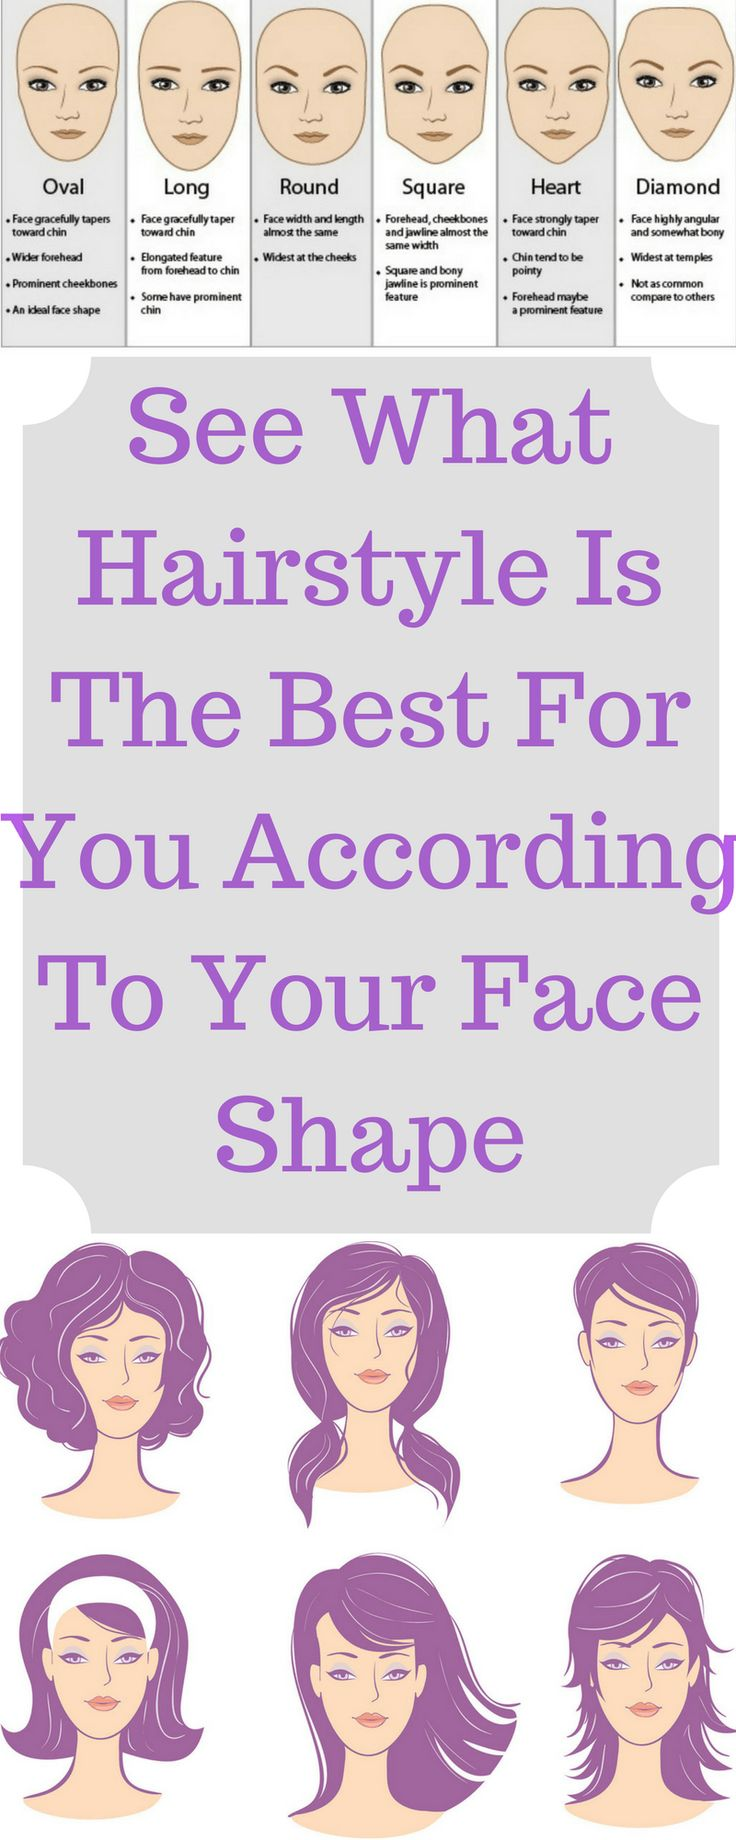 Hairstyle According To My Face 516 Best Images About My Next Hairstyle On Pinterest Kelly